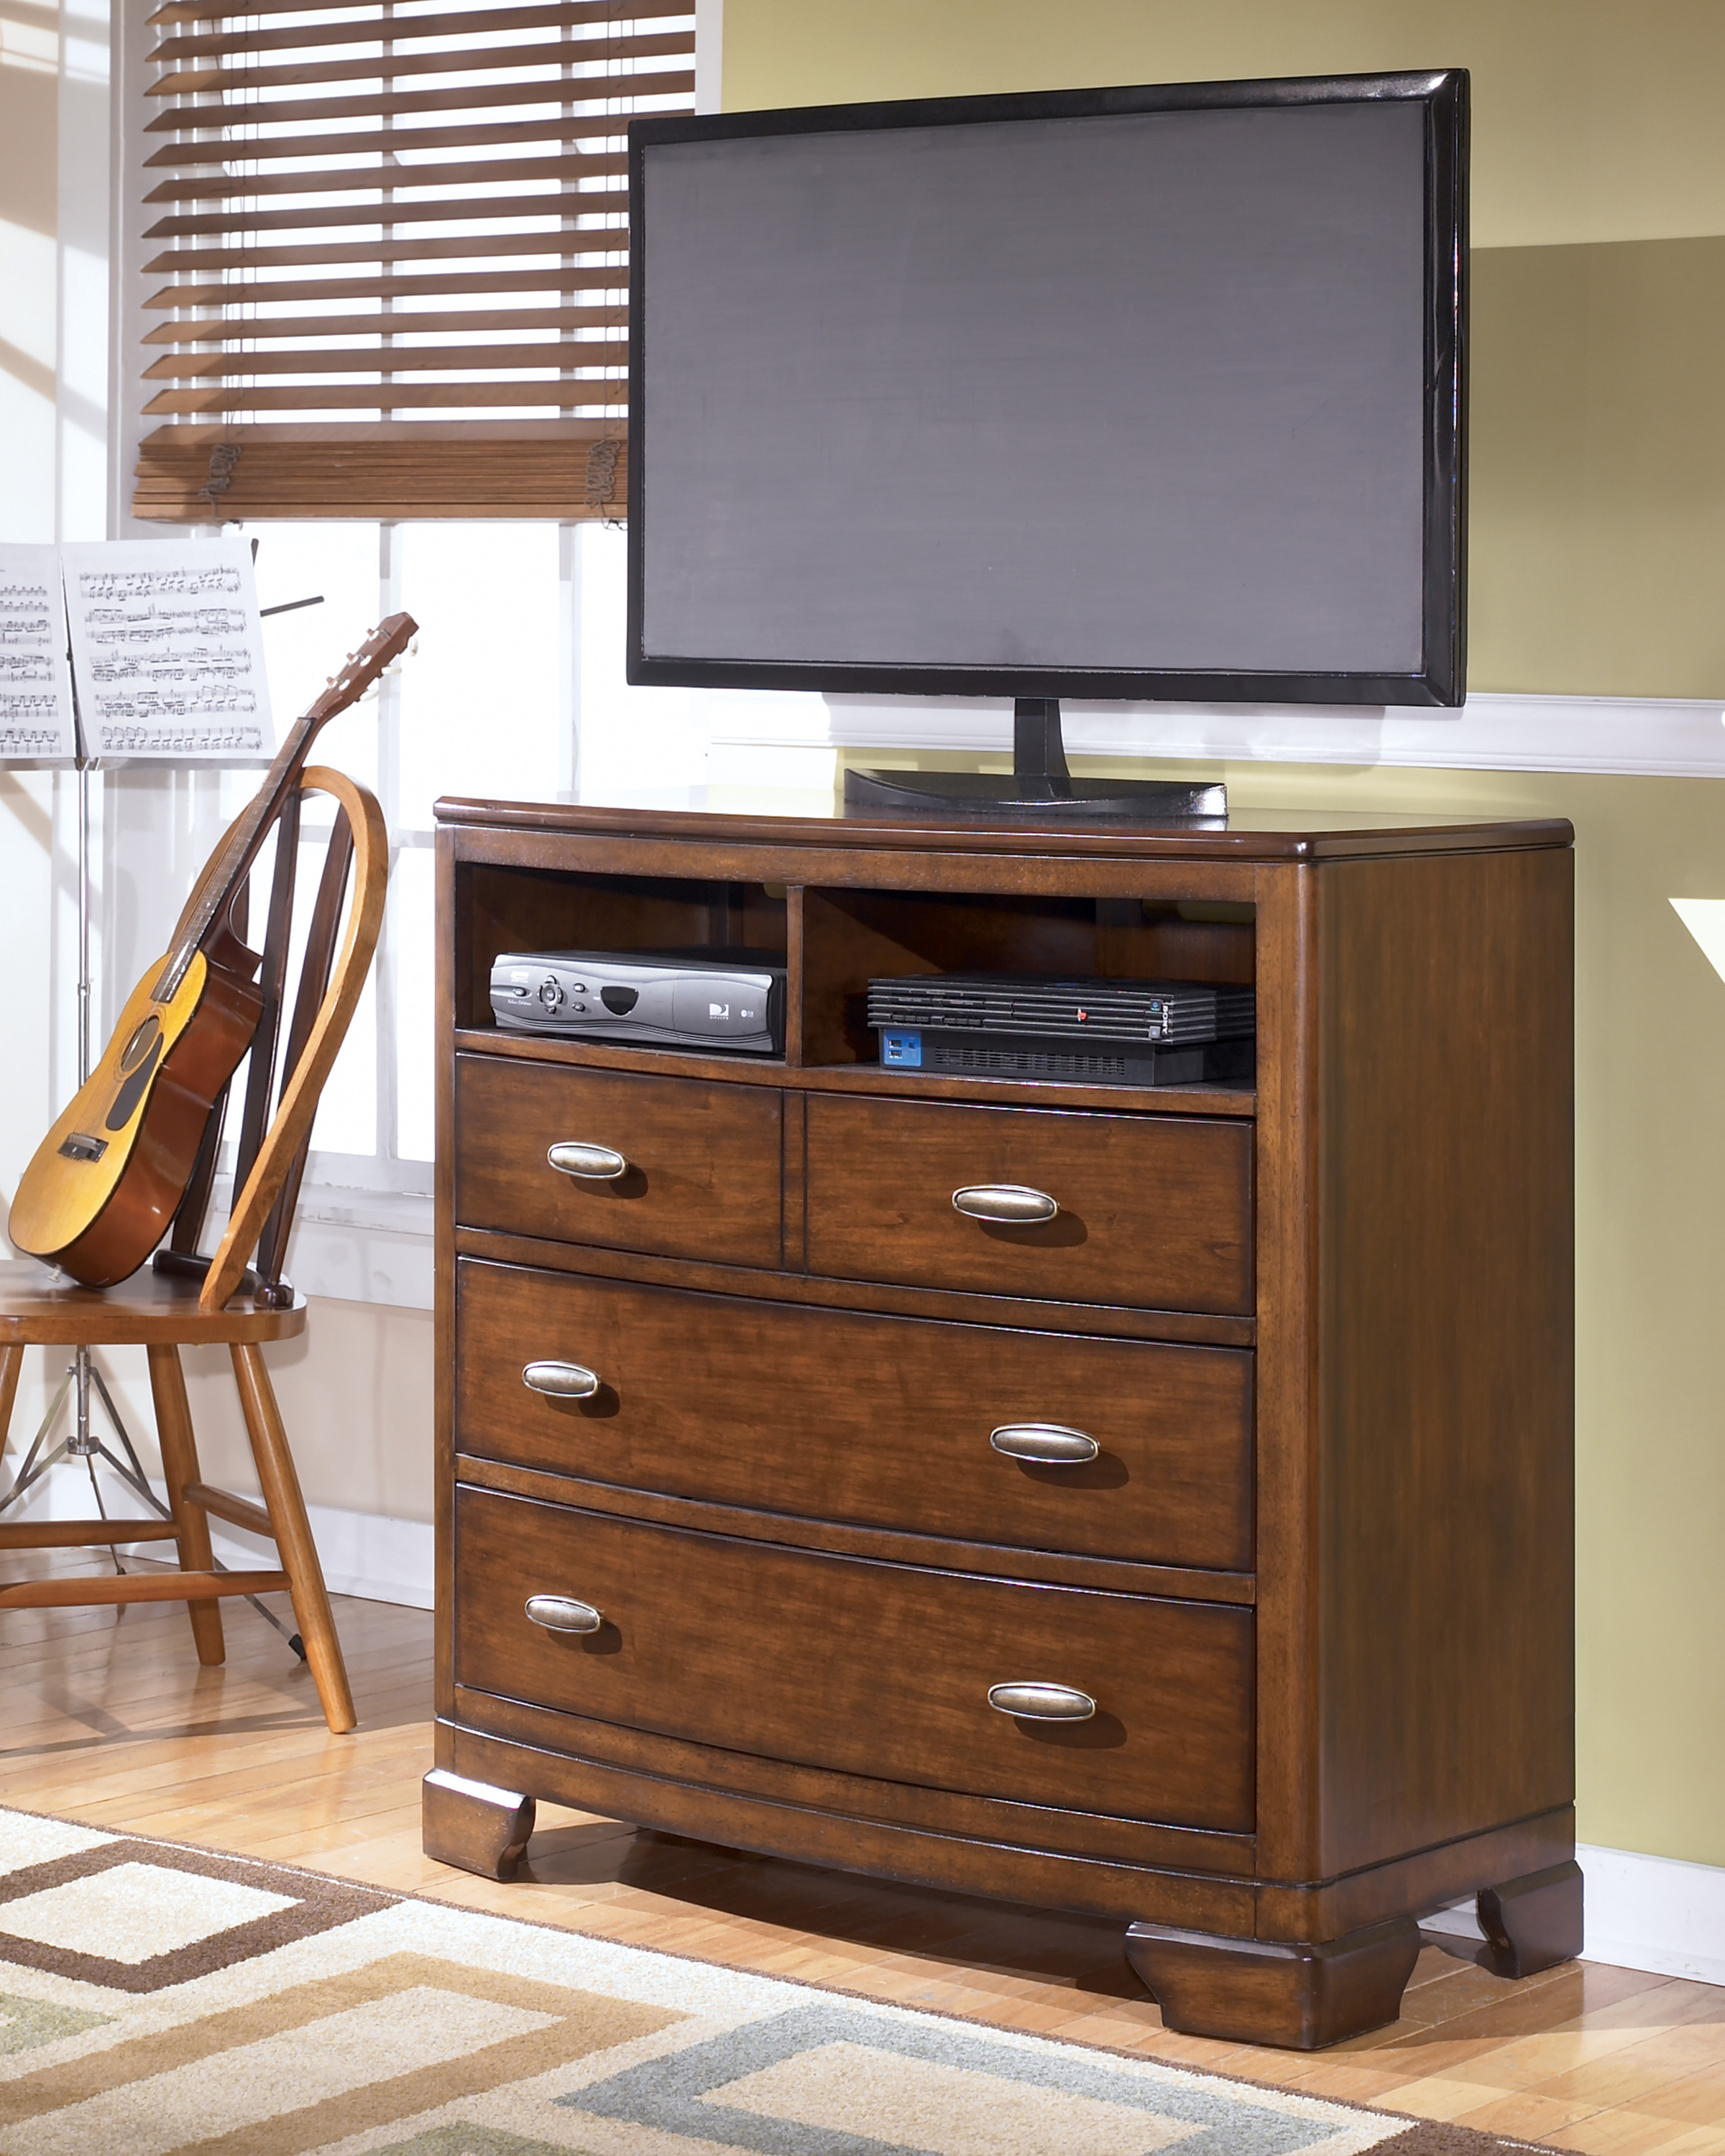 liberty lagana furniture the alea youth bedroom by